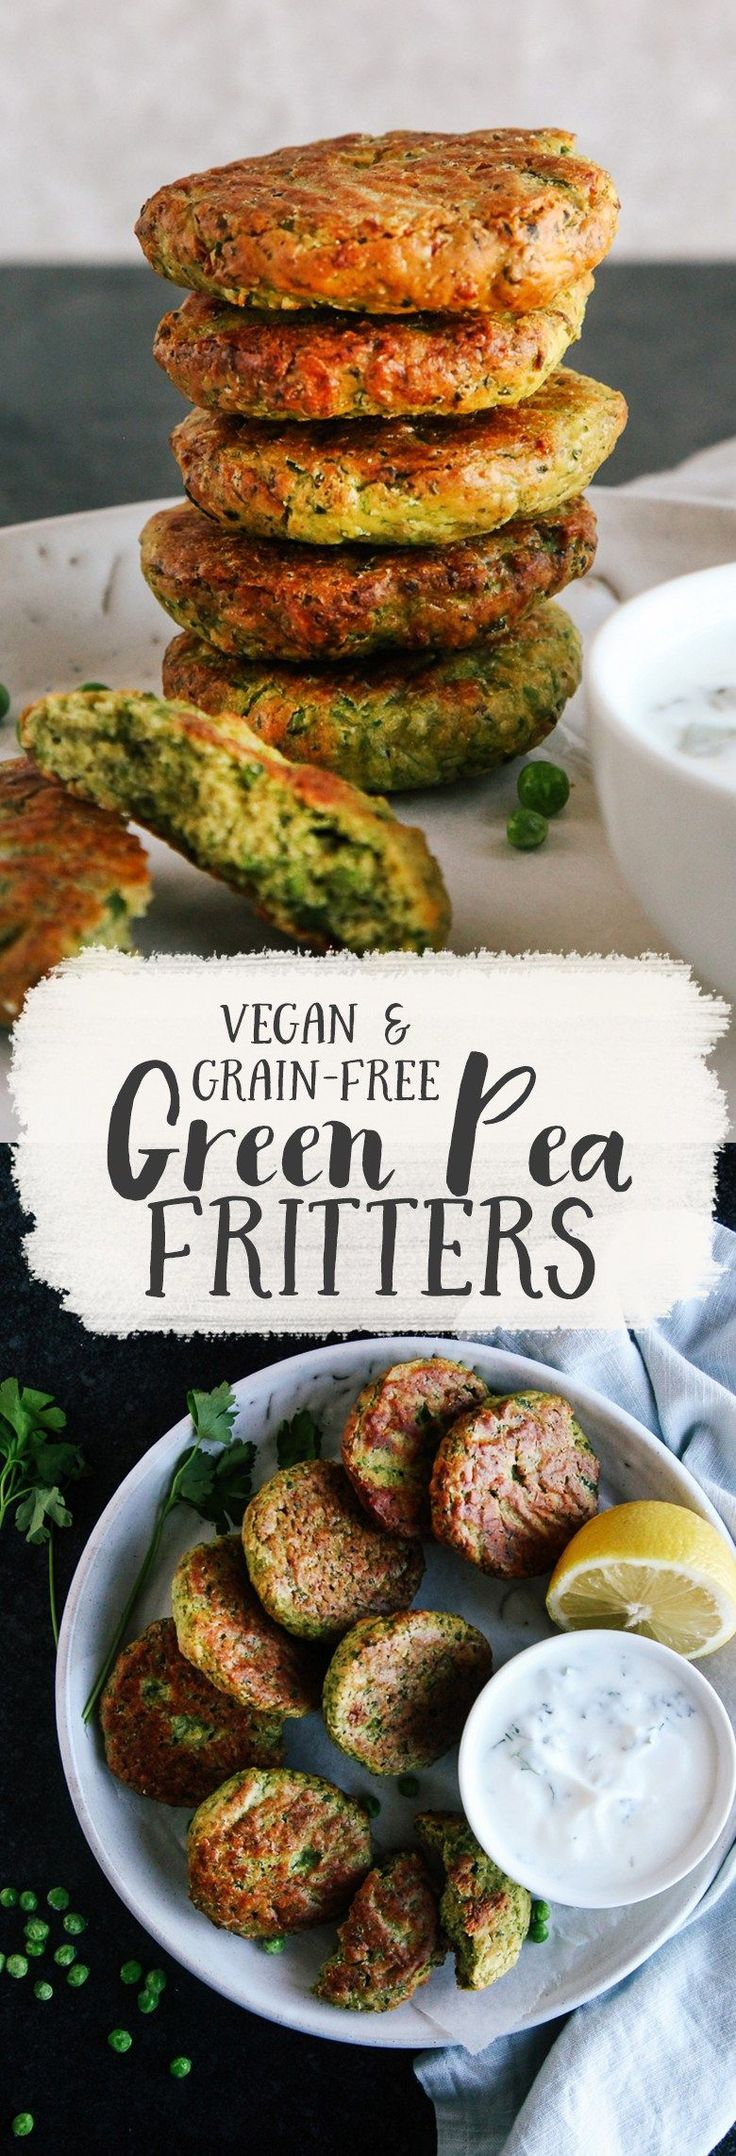 These look so tasty, I imagine they'd be lovely as a side or maybe even inside a wrap as a falafel replacement? | whole food plant based vegan | gluten free vegan